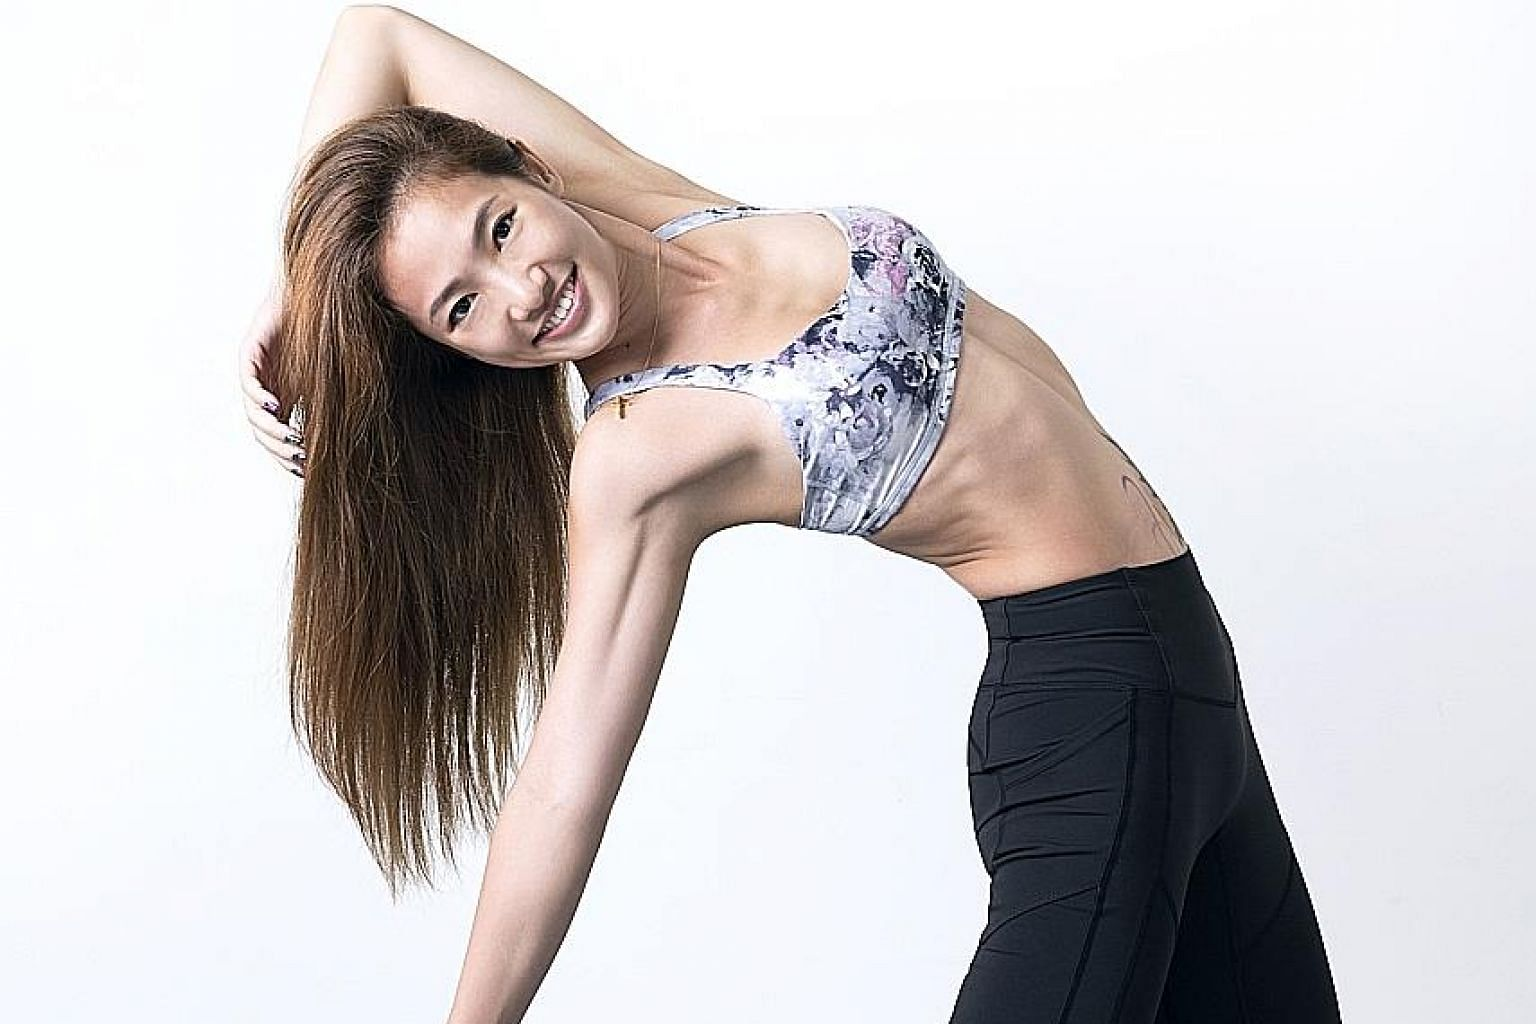 Yoga instructor Jasmine Chong will lead one of the workouts at the inaugural FitnessFest.